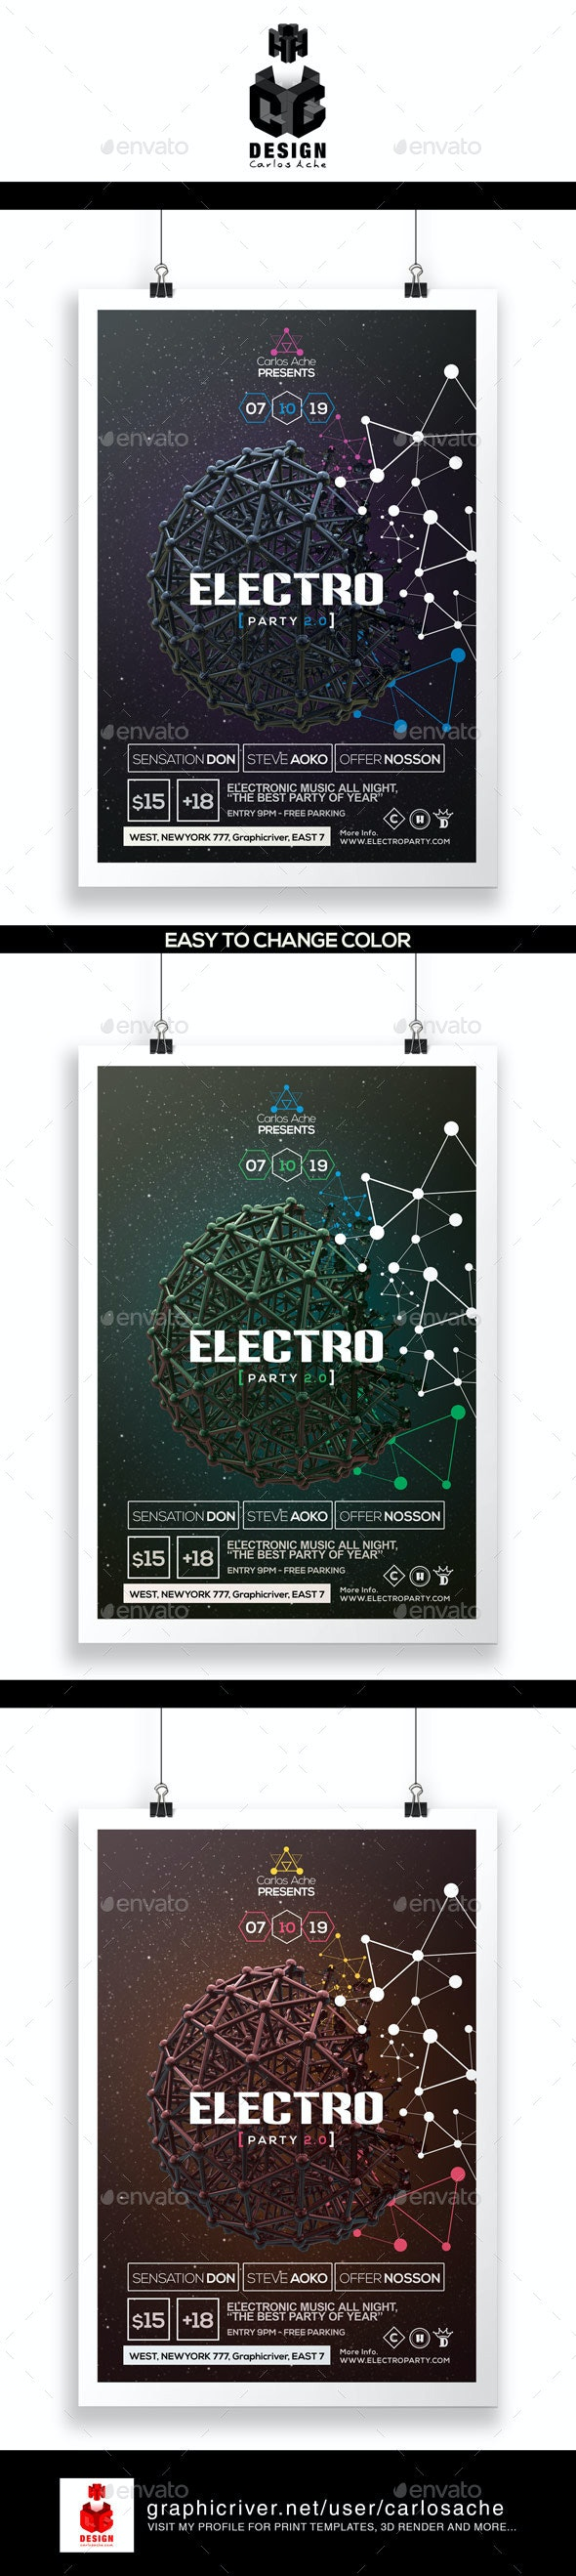 Electro Party Flyer & Poster Template - Clubs & Parties Events